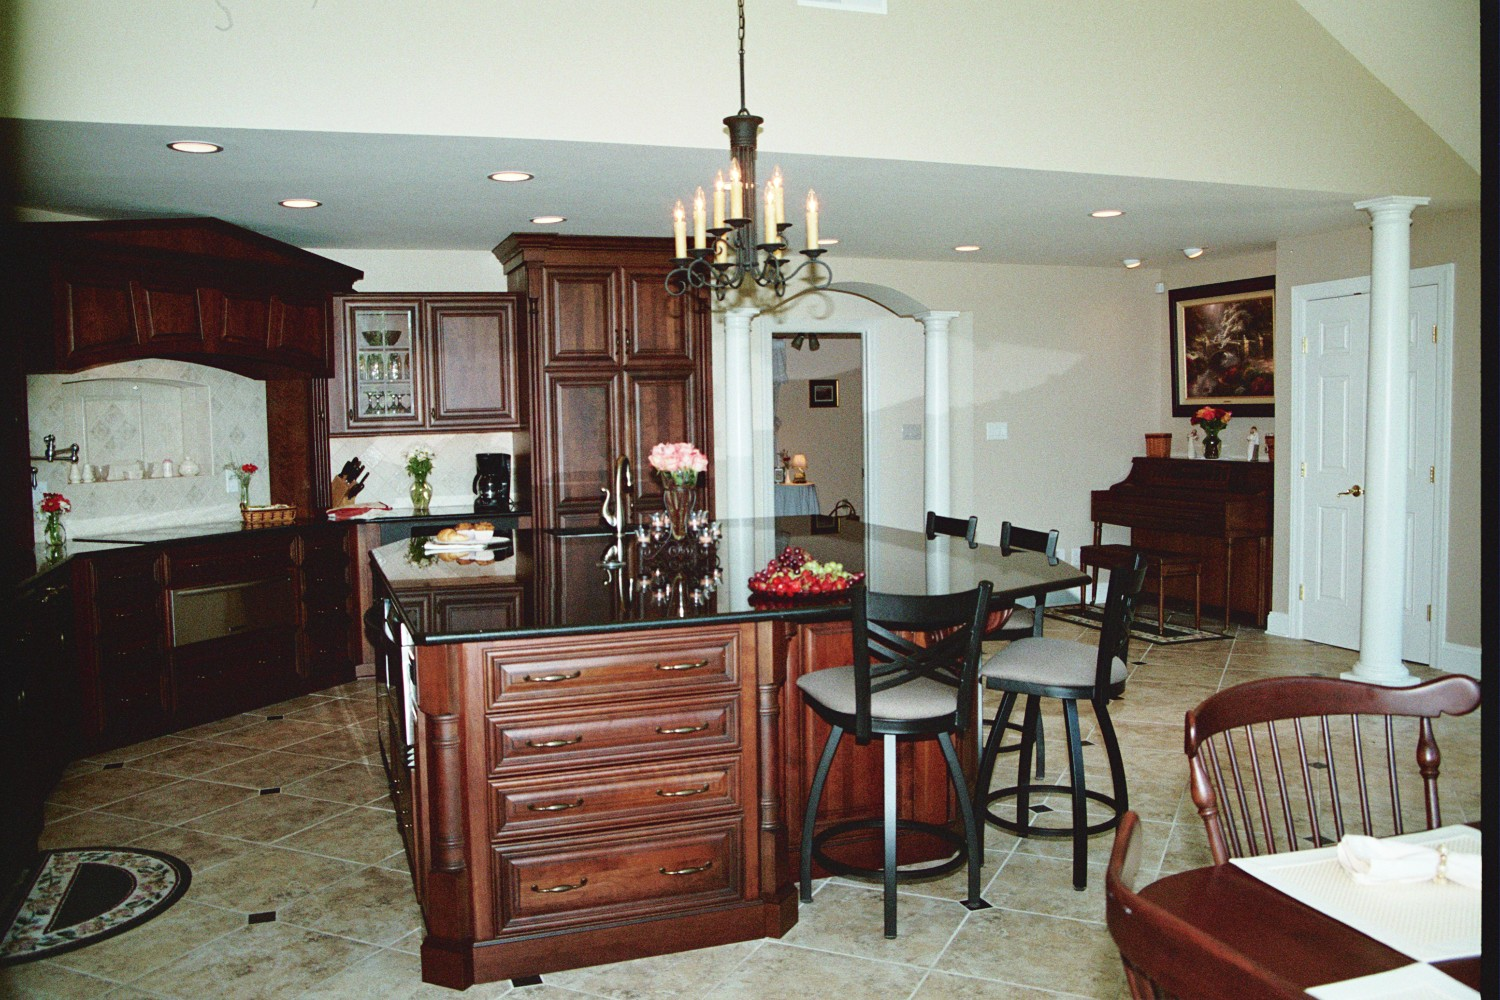 Bringing the outdoors in kitchen dining great room addition bel air construction maryland - Dining room additions ...